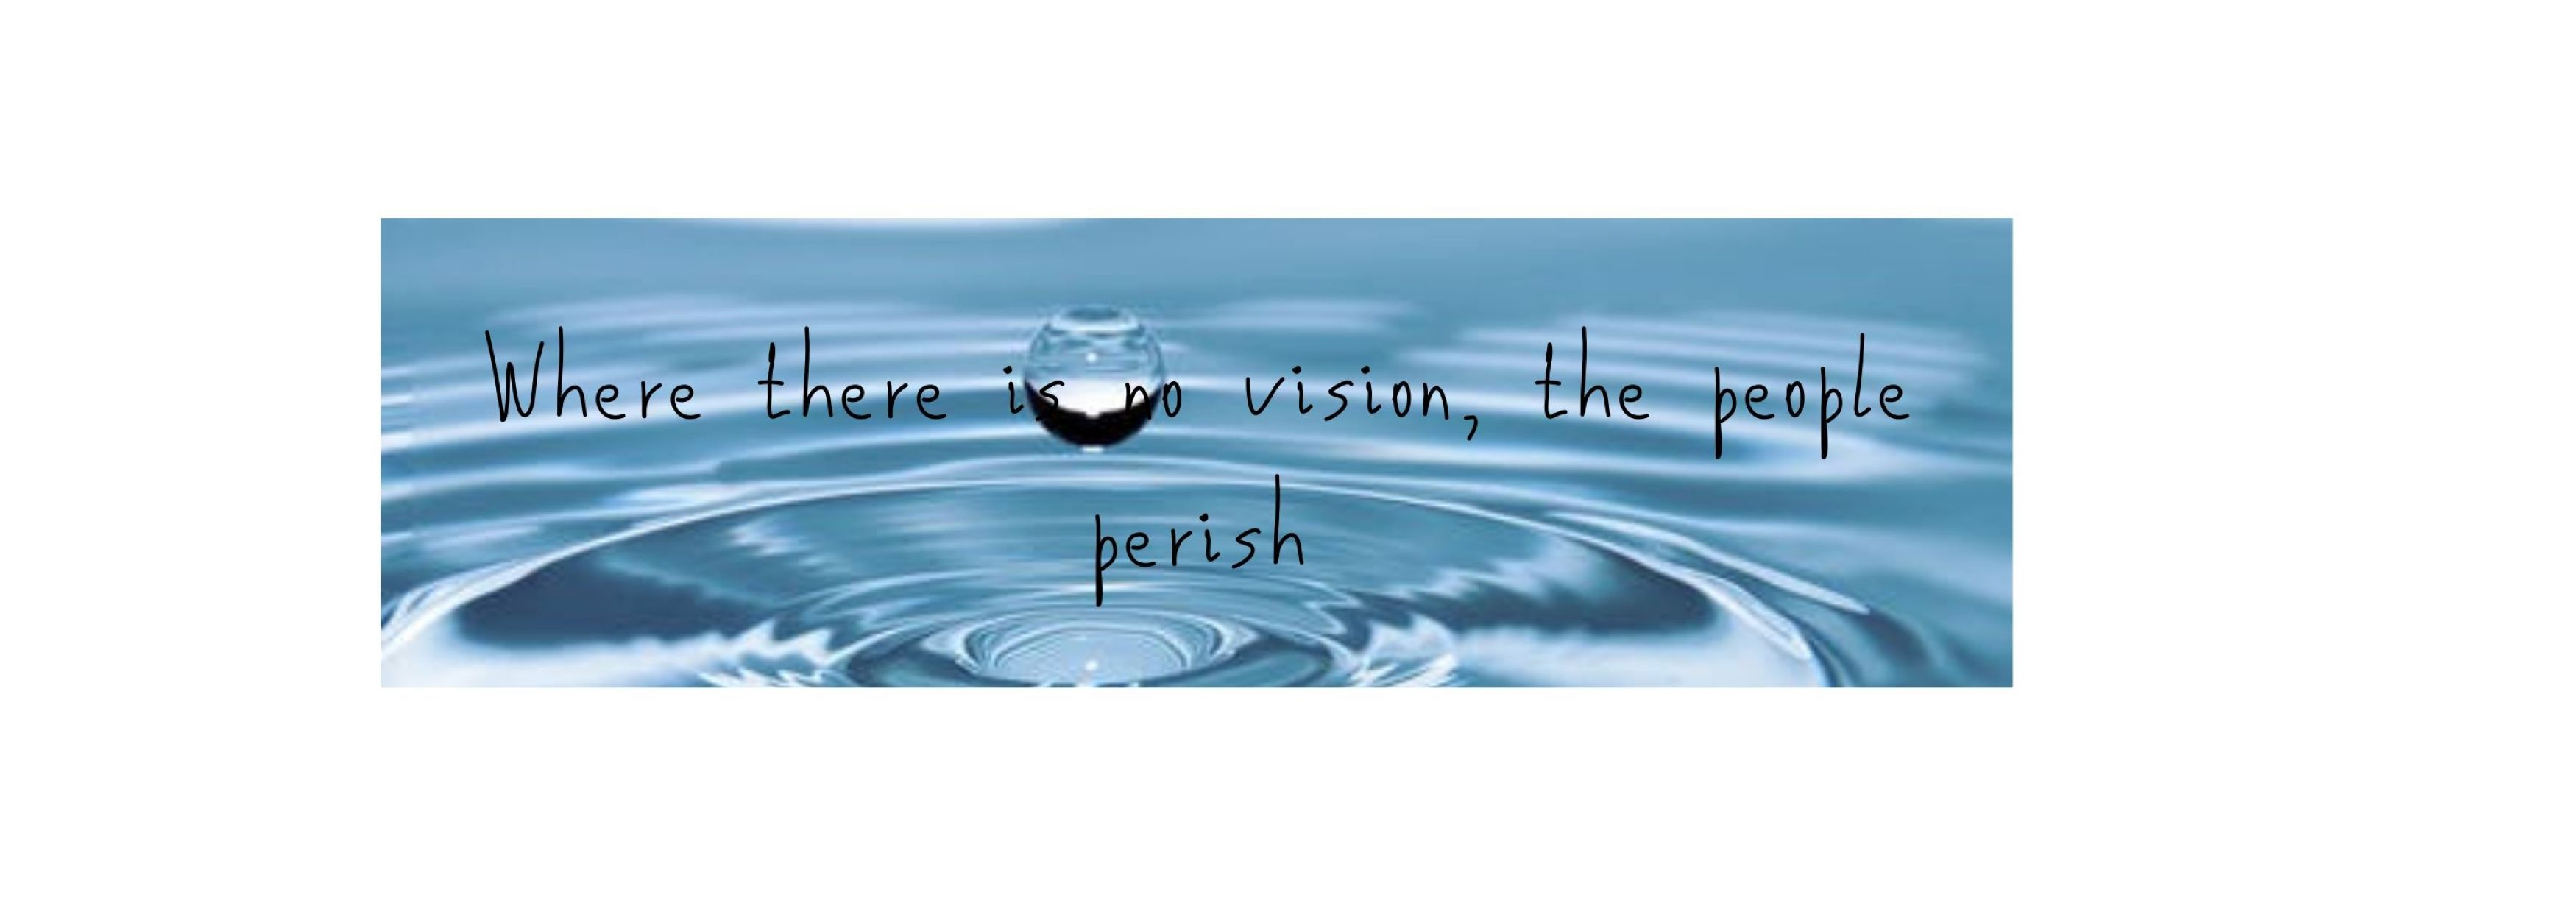 FVM Where there is vision, the people perish 4